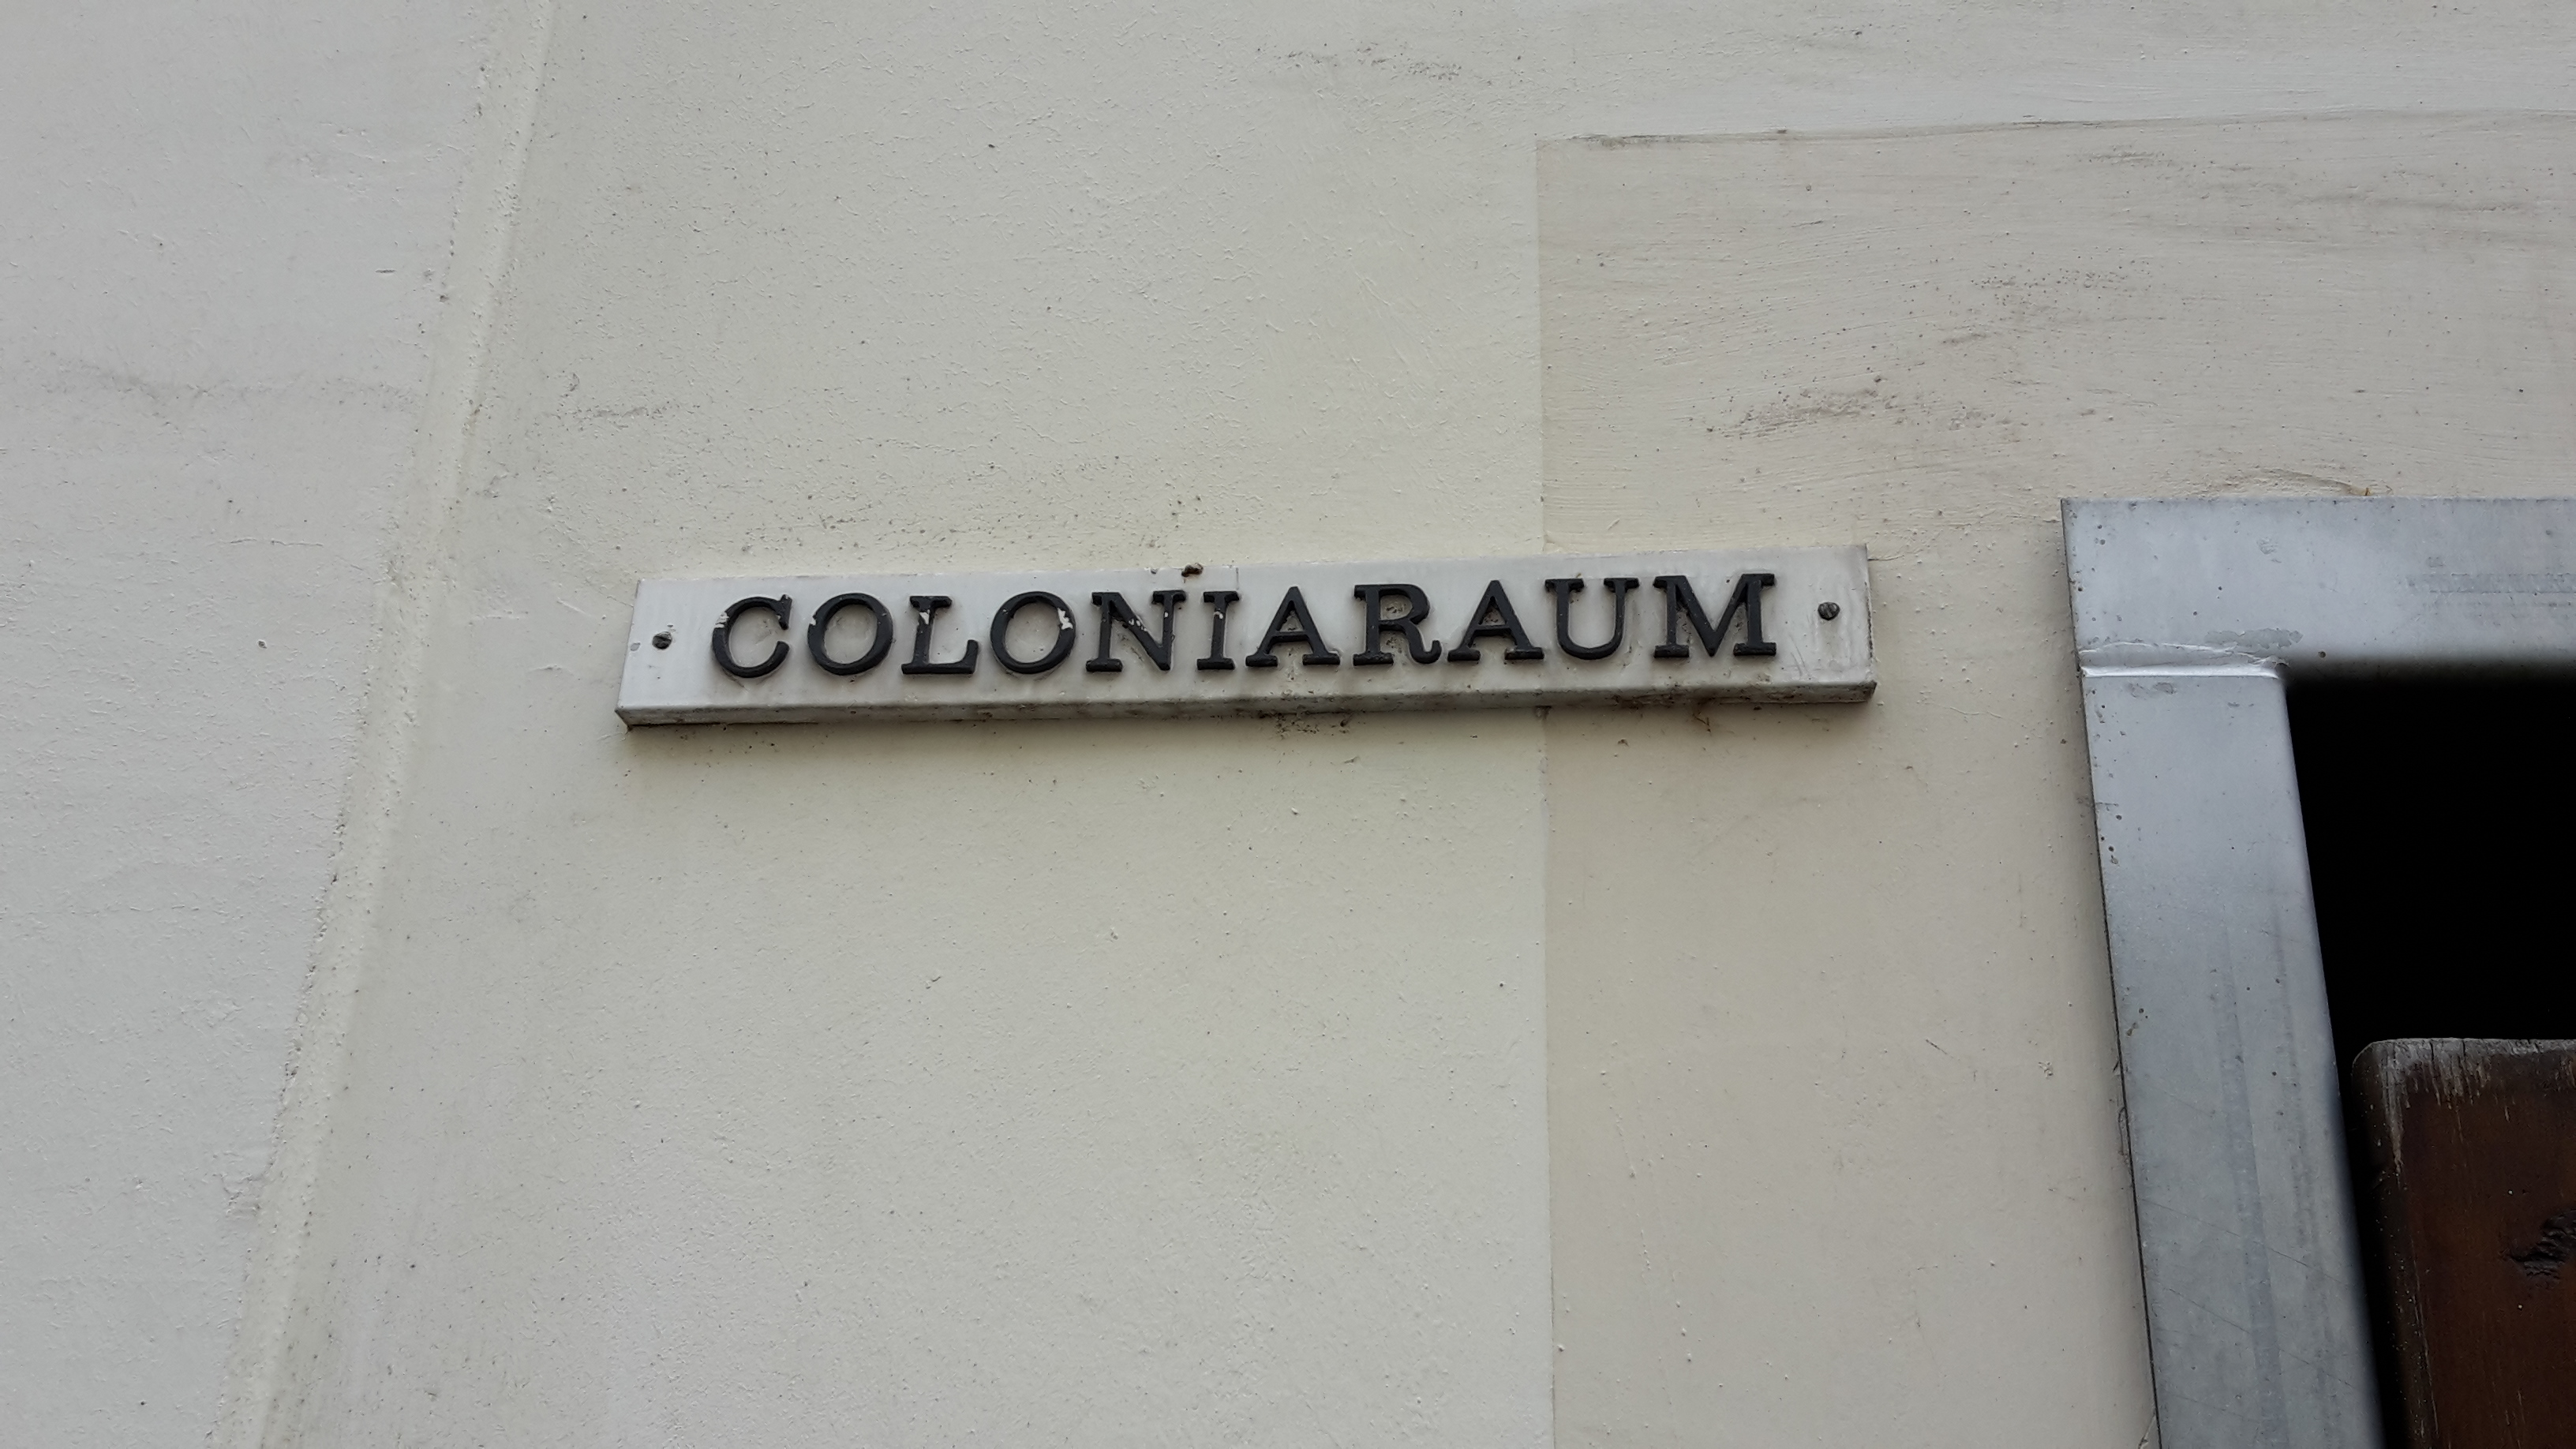 Coloniaraum